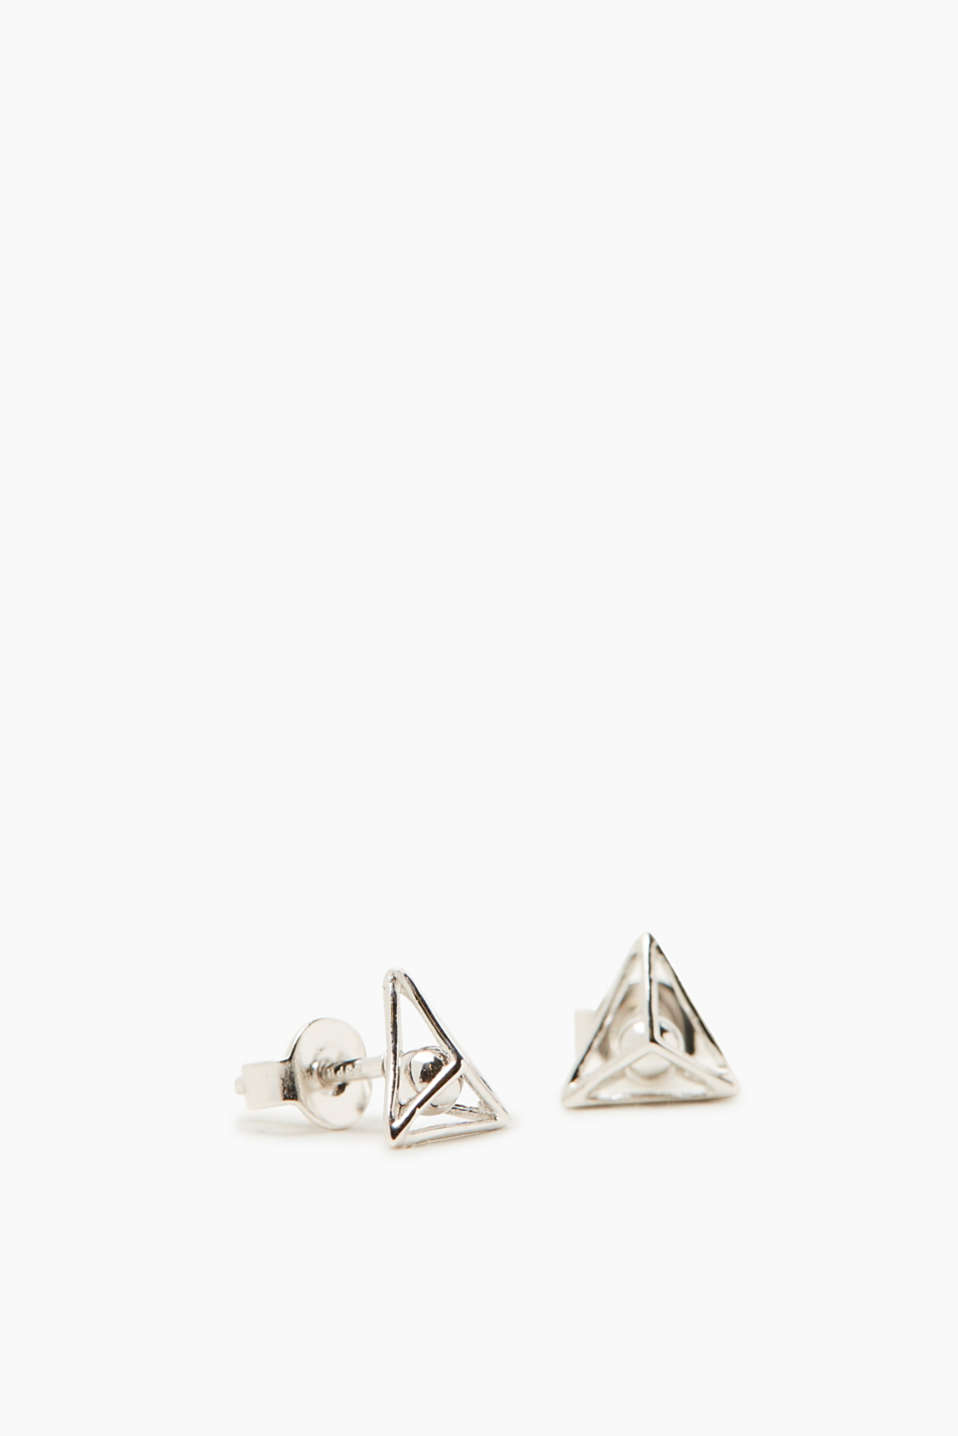 We love modern 3D design! These earrings in sterling silver are no exception.